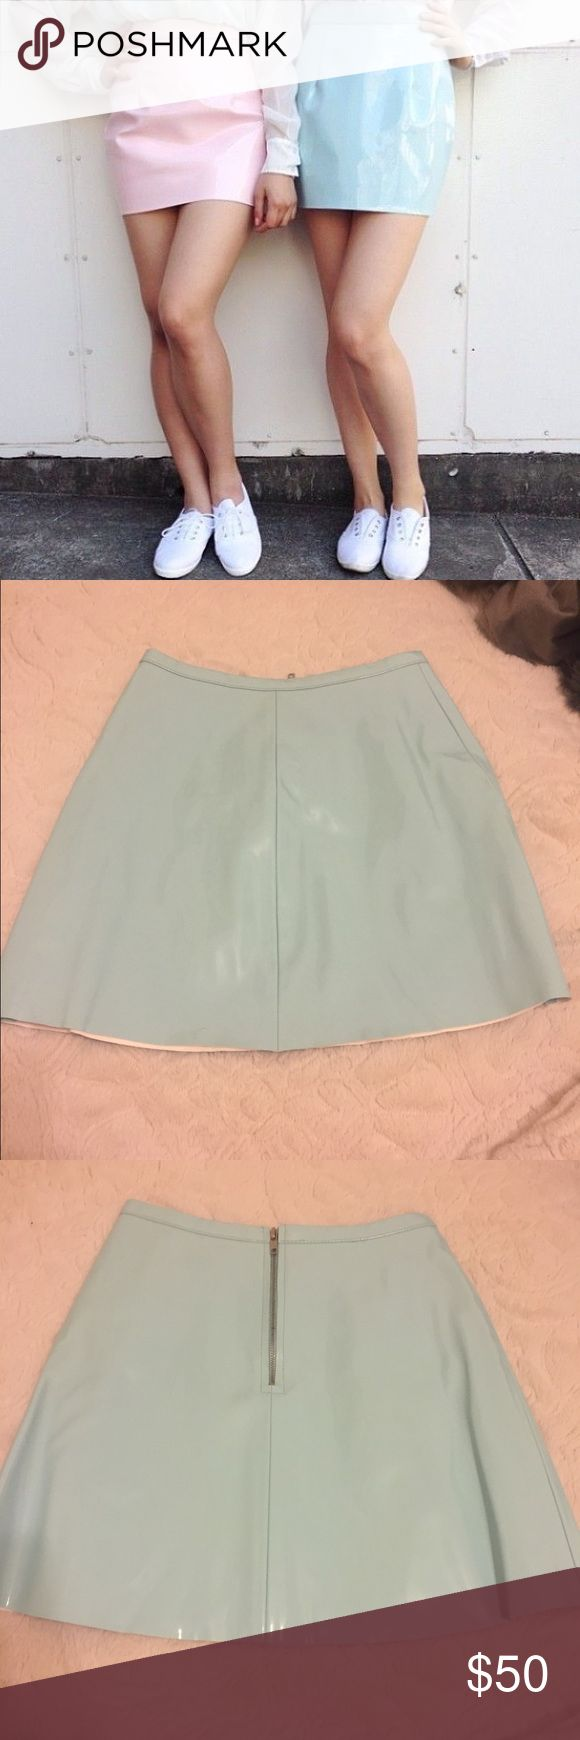 25 best ideas about pvc skirt on edc clothing